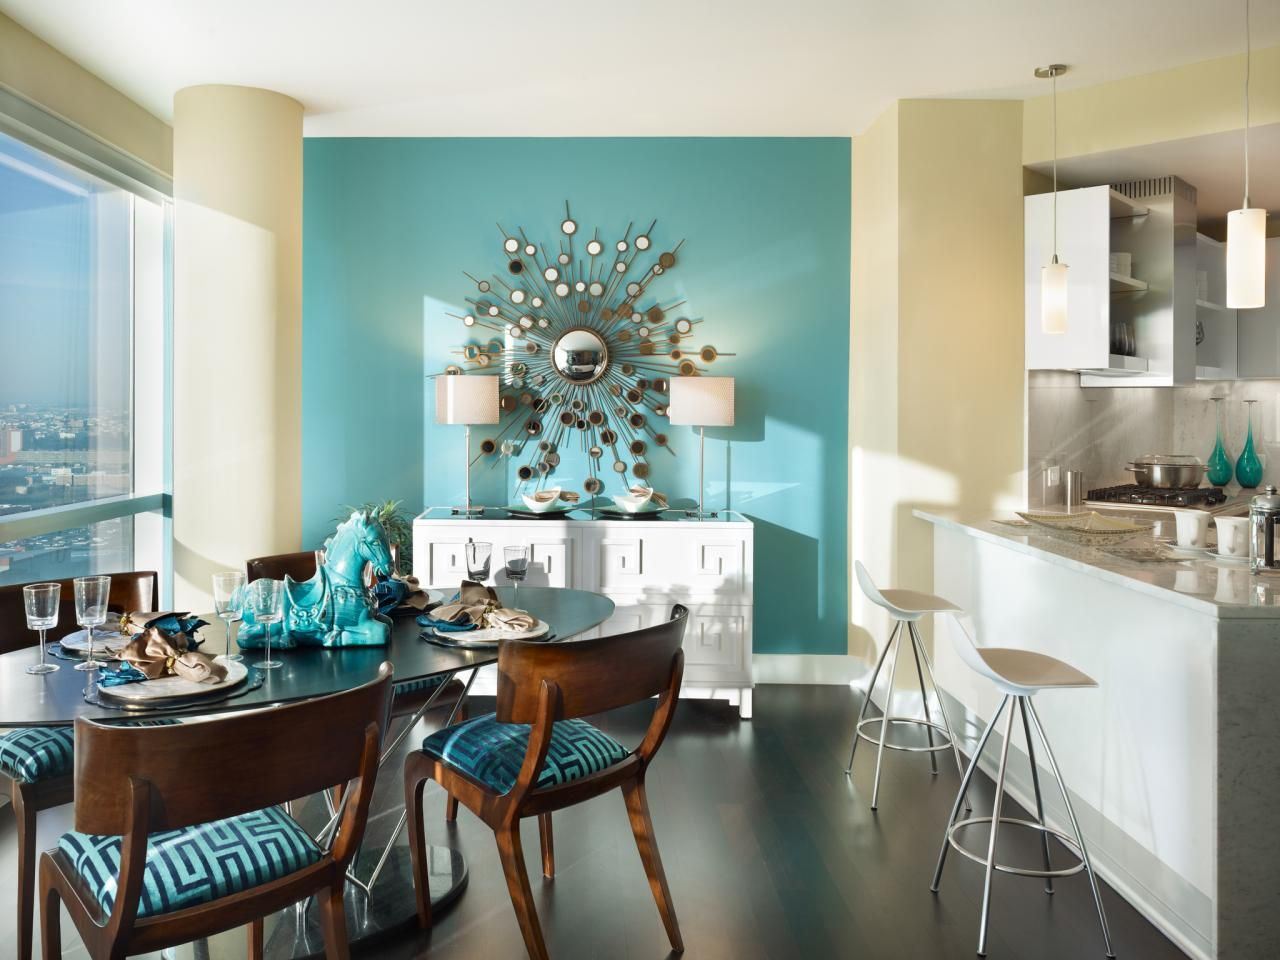 Top 50 Pinterest Gallery 2014 | Interior Design Styles And Color Schemes  For Home Decorating |